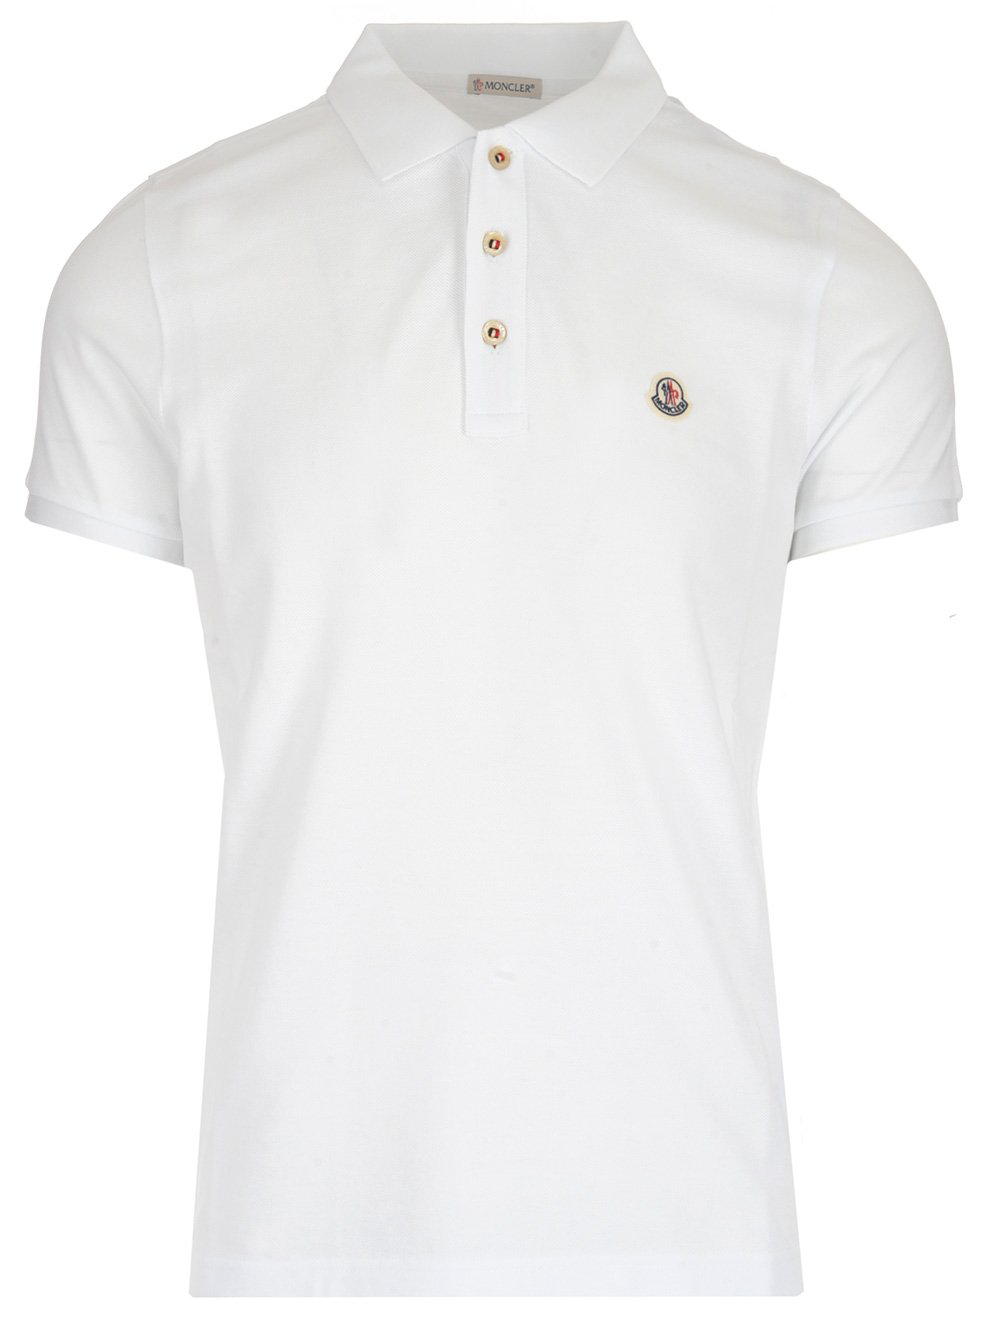 c29d2c625 Moncler Classic Polo Shirt In White